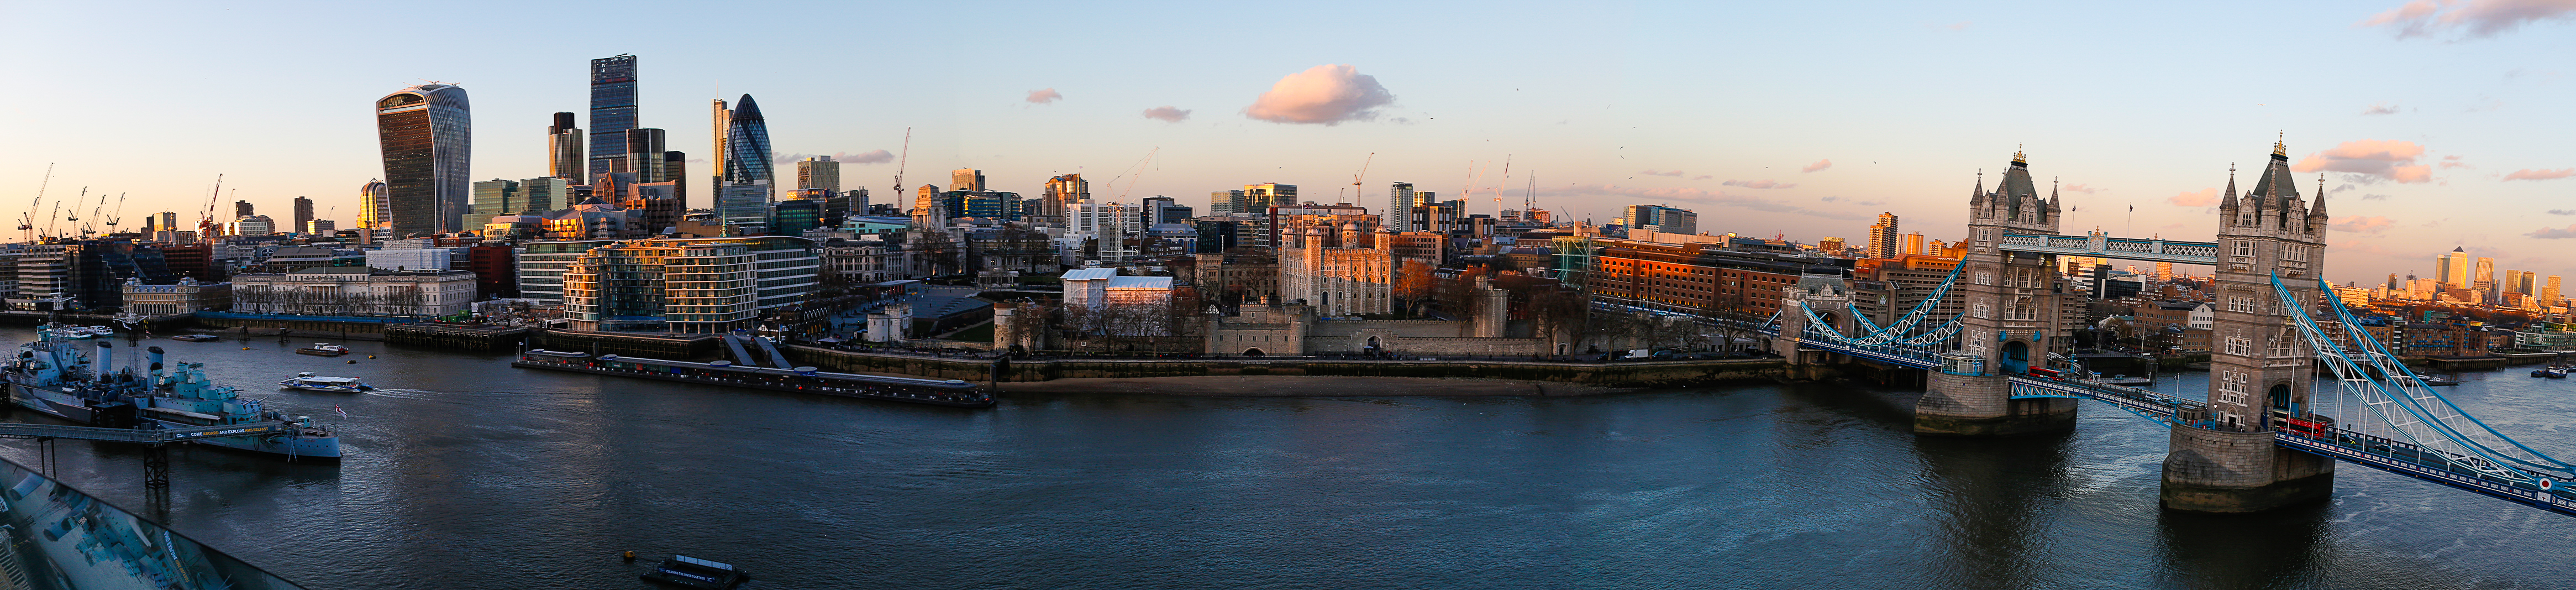 London Panorama March 2015 copy